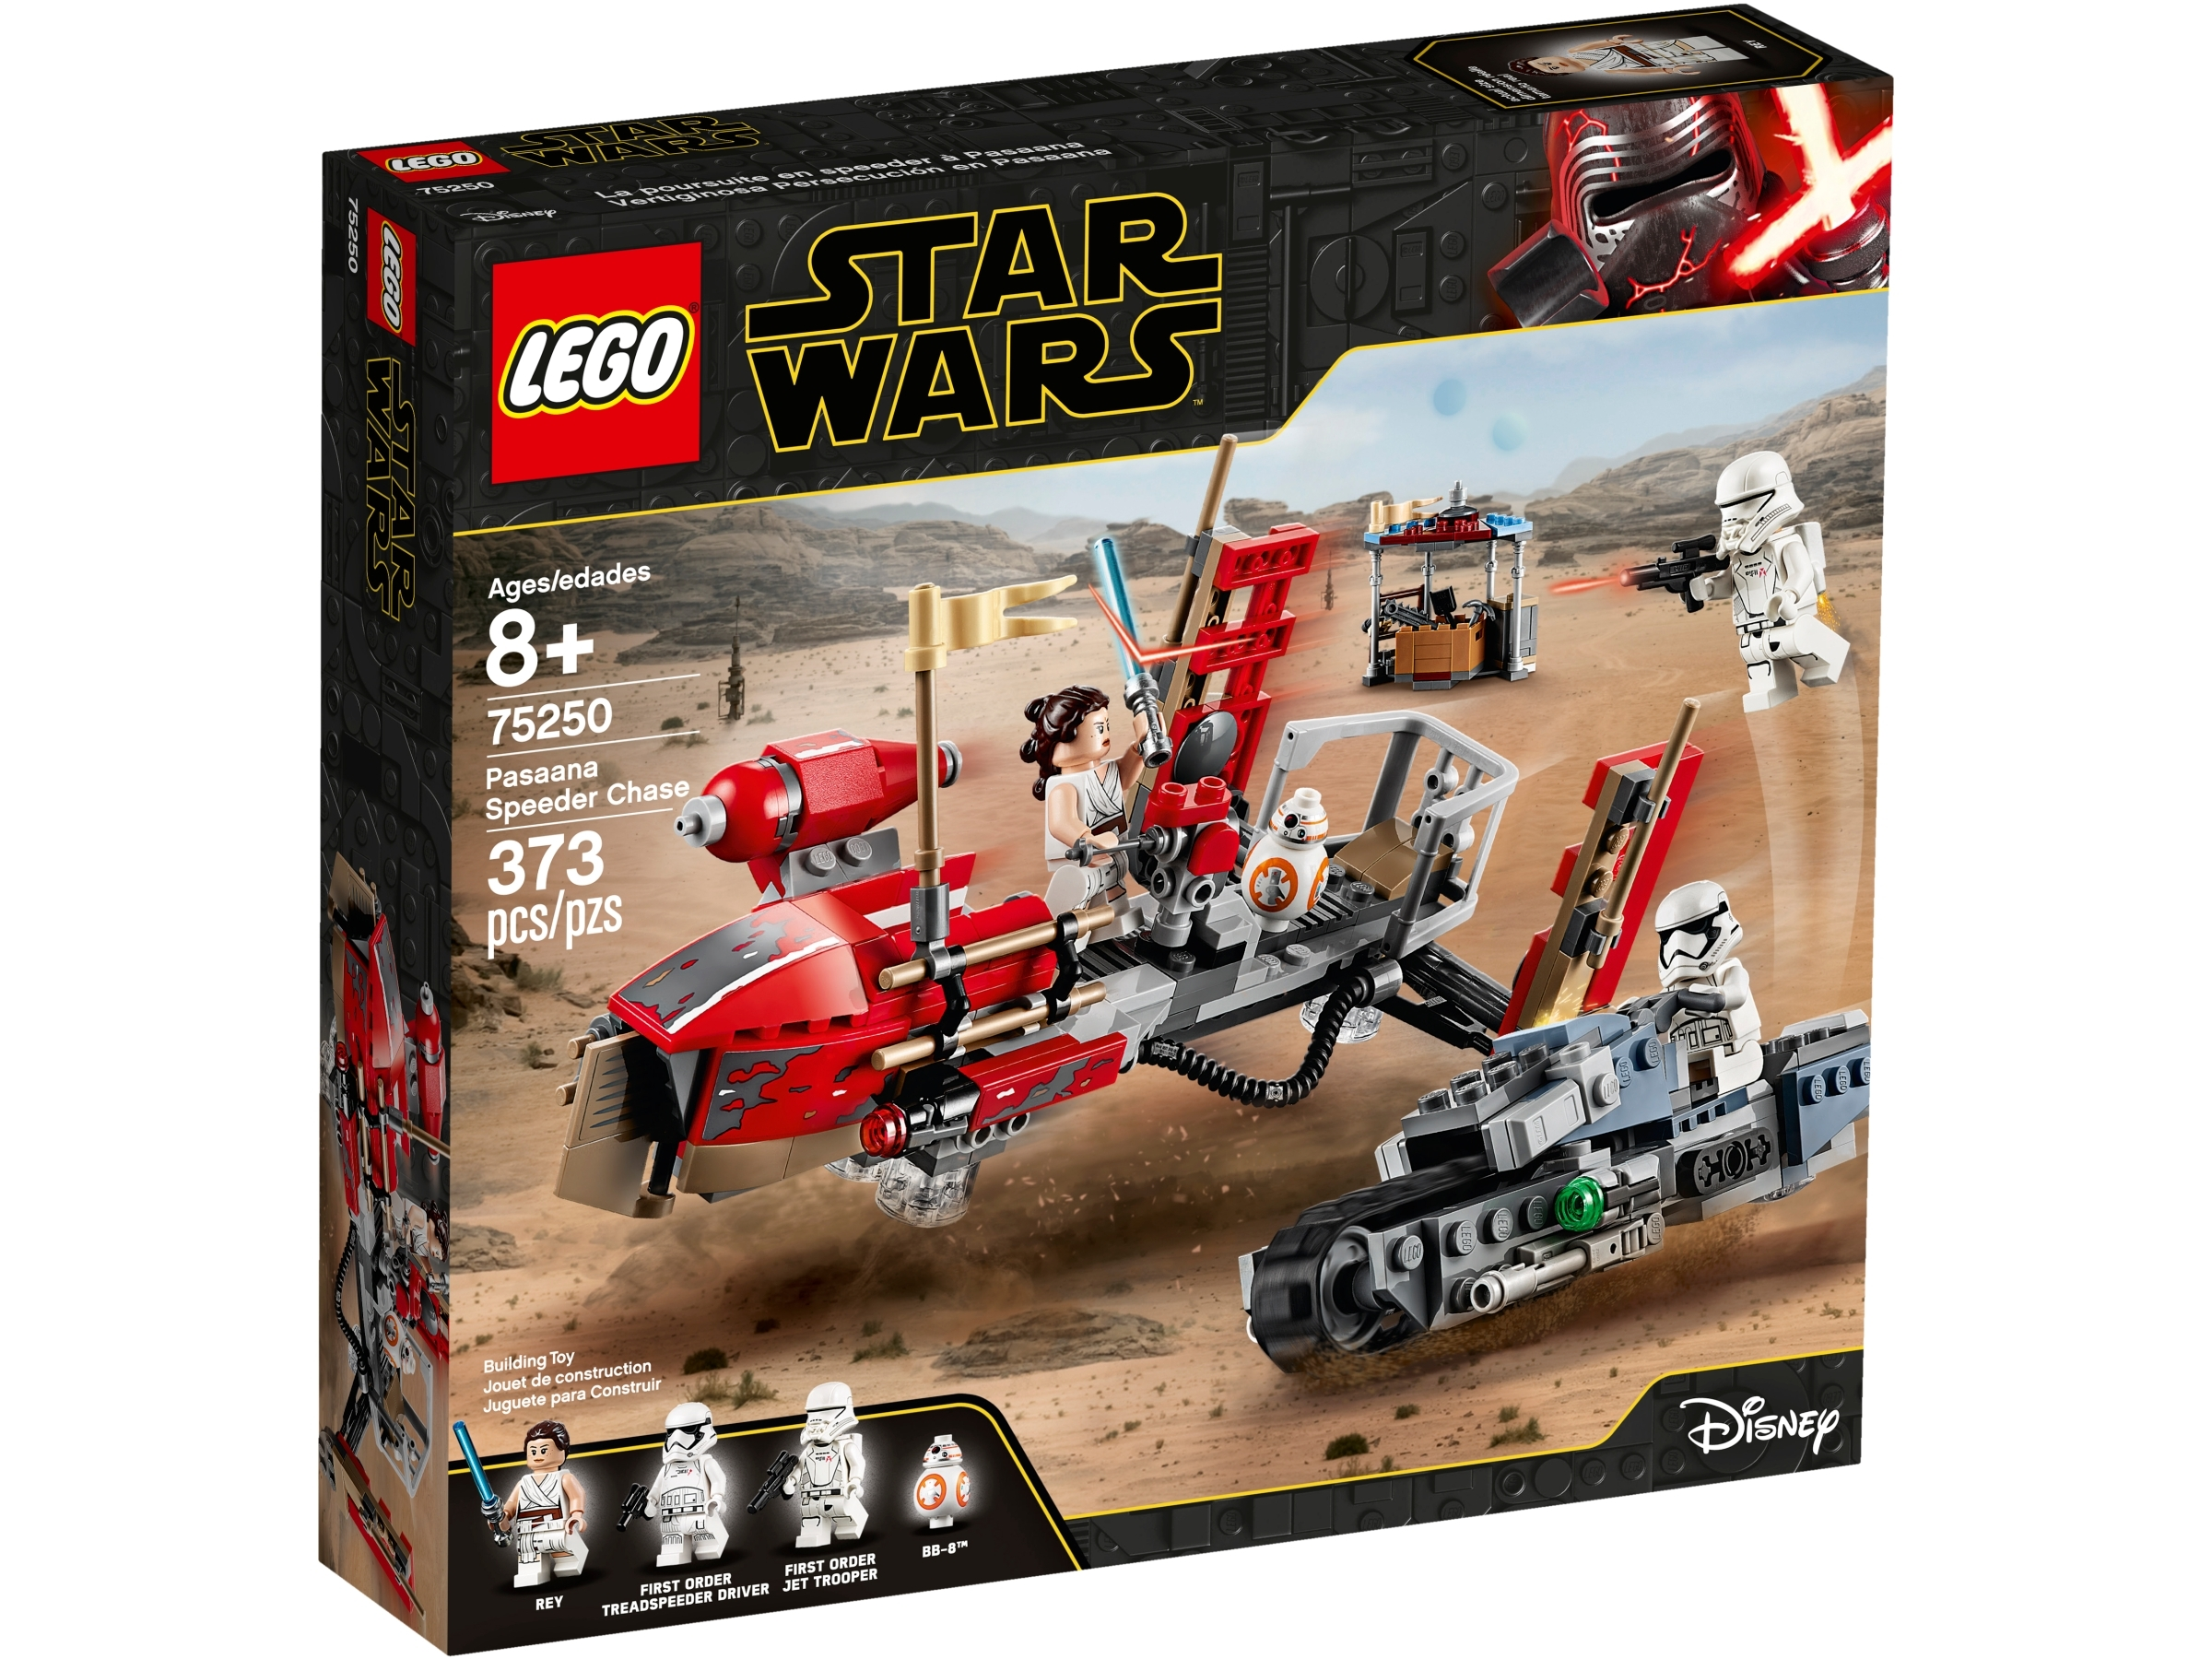 Pasaana Speeder Chase 75250 Star Wars Buy Online At The Official Lego Shop Us